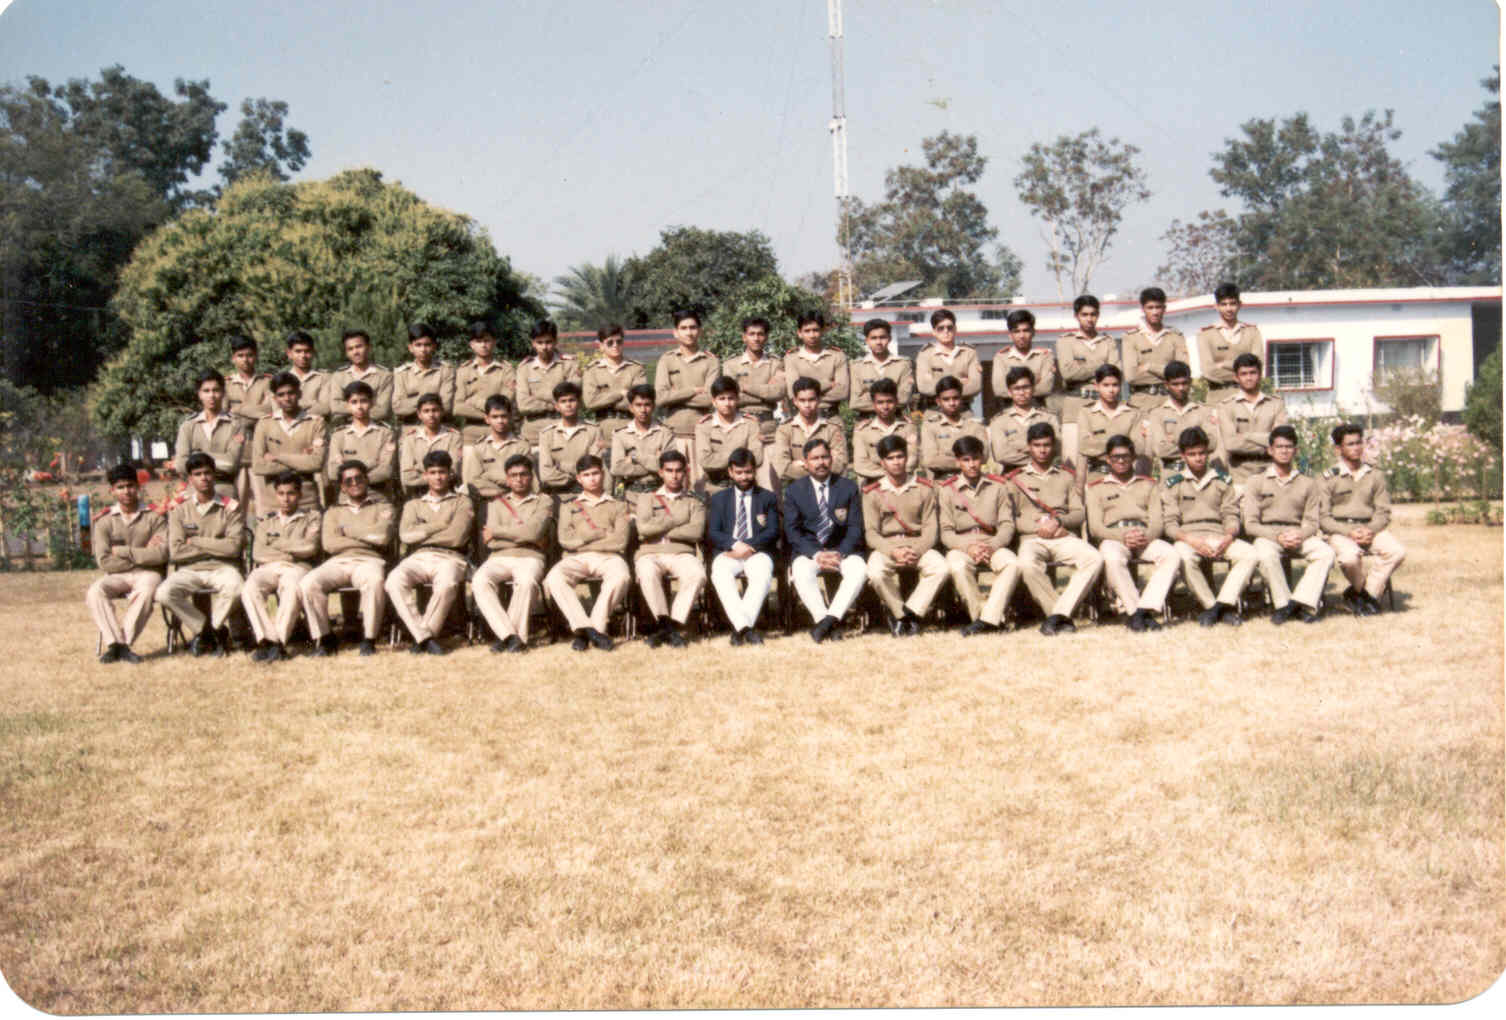 25th batch (1992); Actual size=180 pixels wide